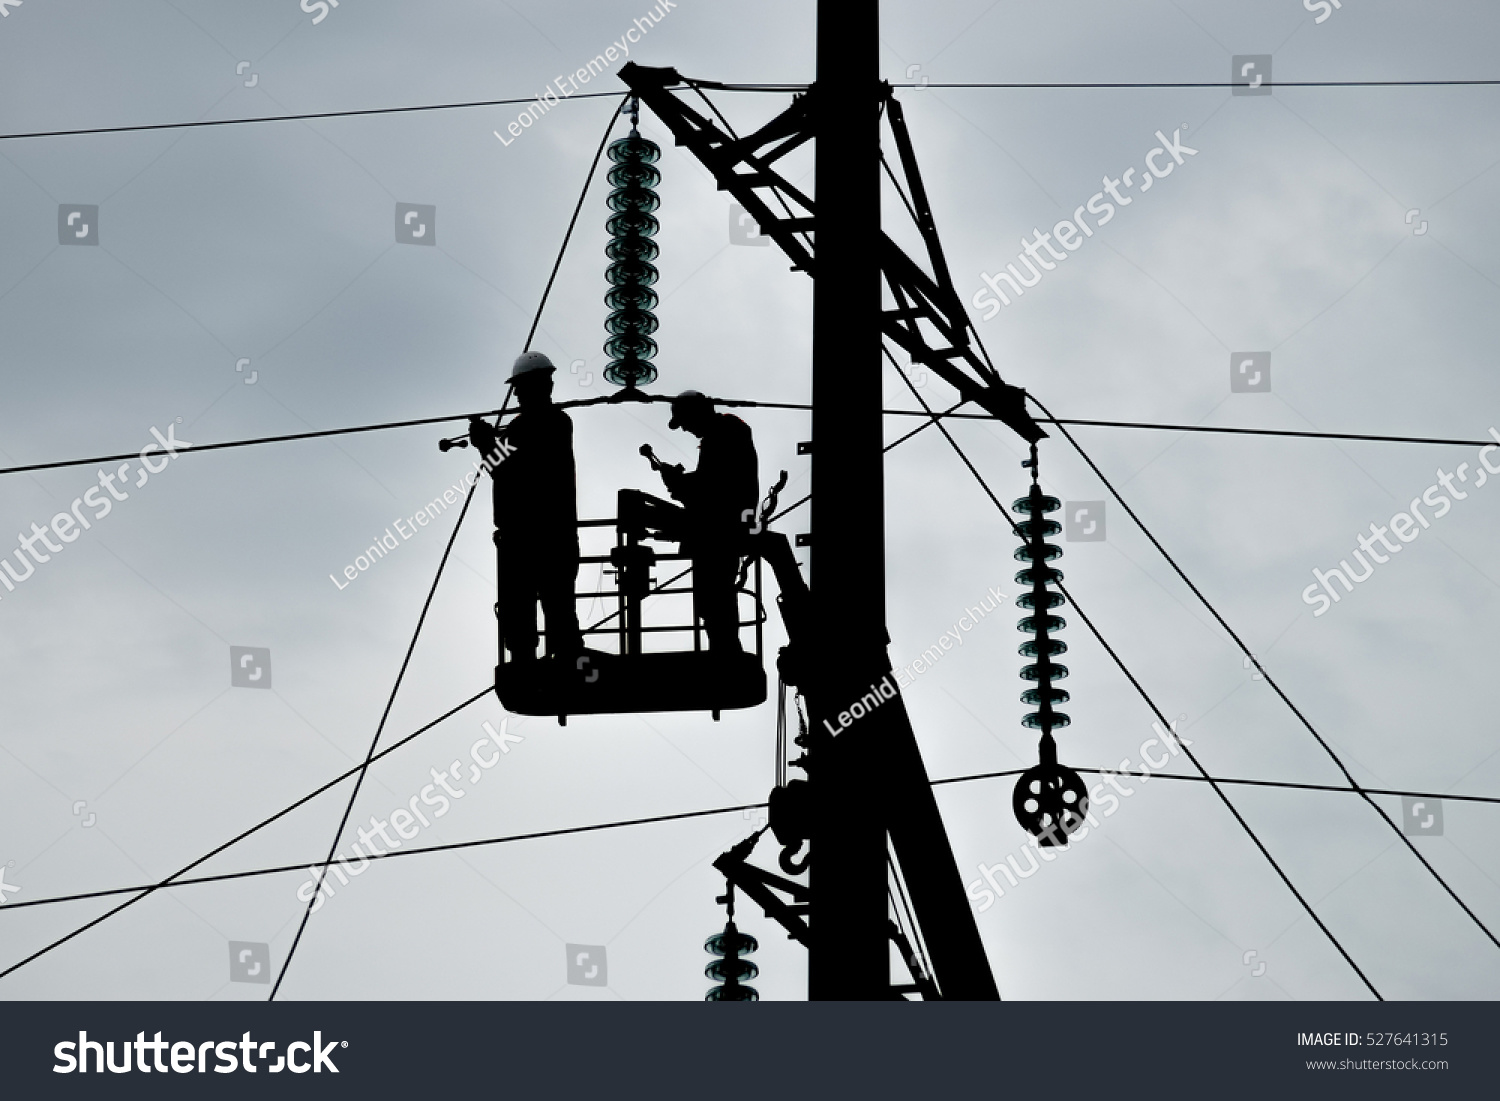 hight resolution of power line support insulators and wires appearance of a design assembly and installation